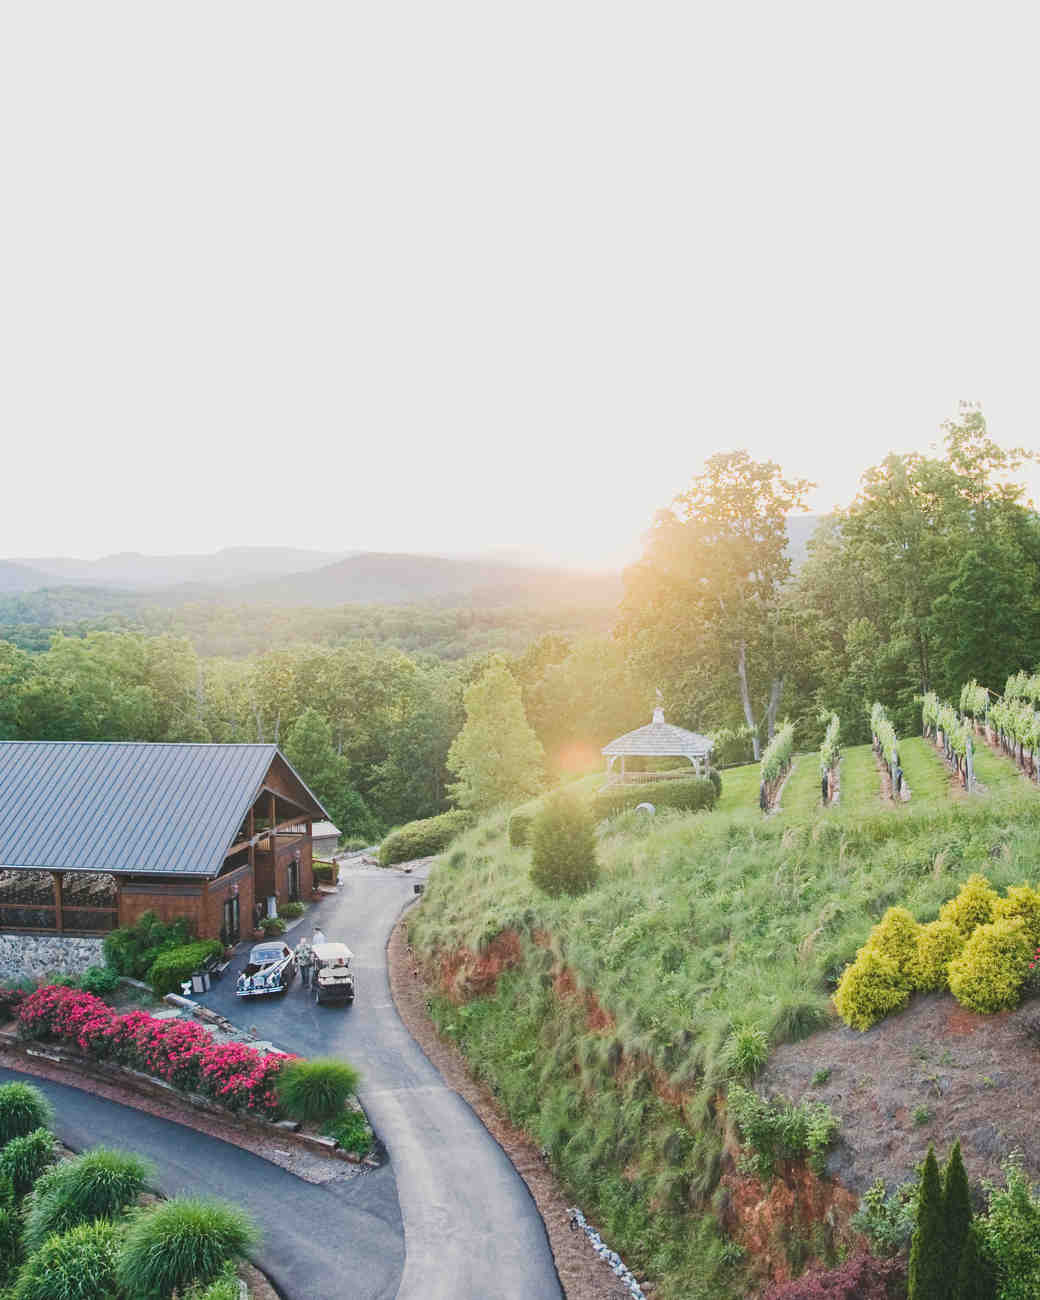 10 Vineyards Outside Of California Where You Can Get Married Martha Stewart Weddings: North Carolina Vineyard Wedding Venue At Reisefeber.org